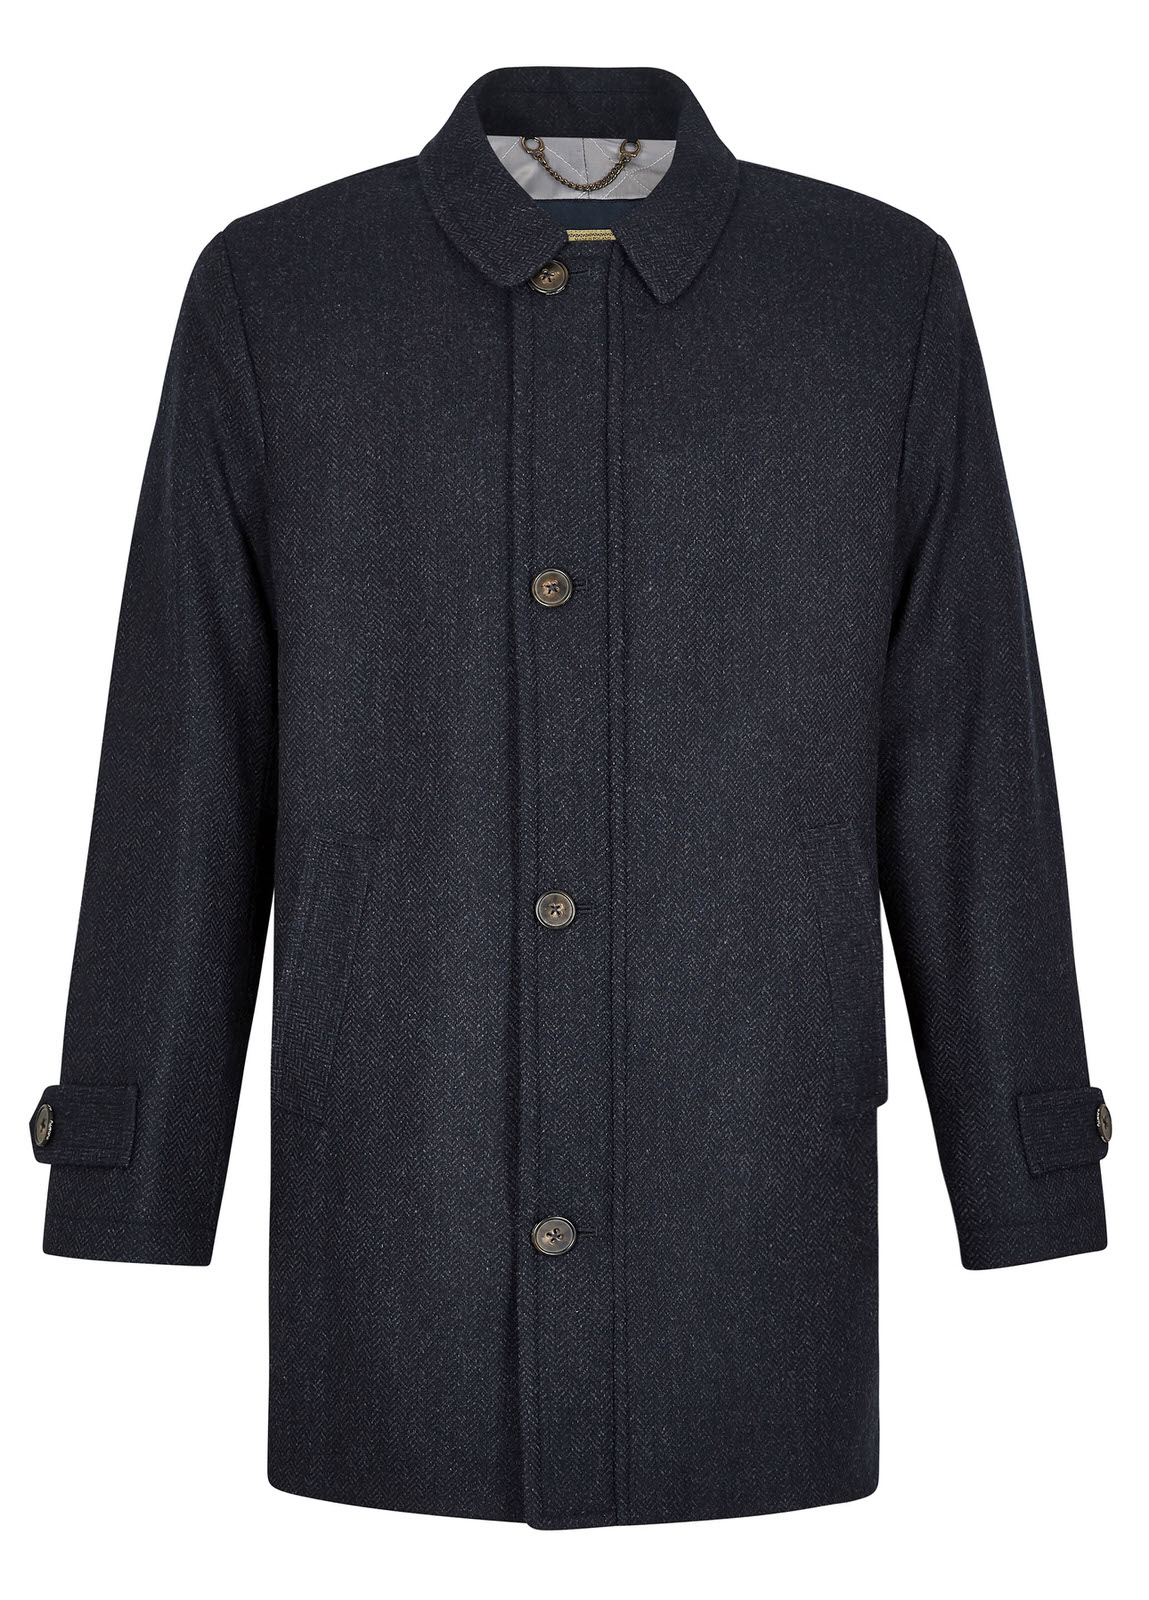 Kingham_Tweed_Coat_Navy/Bordo_Image_1